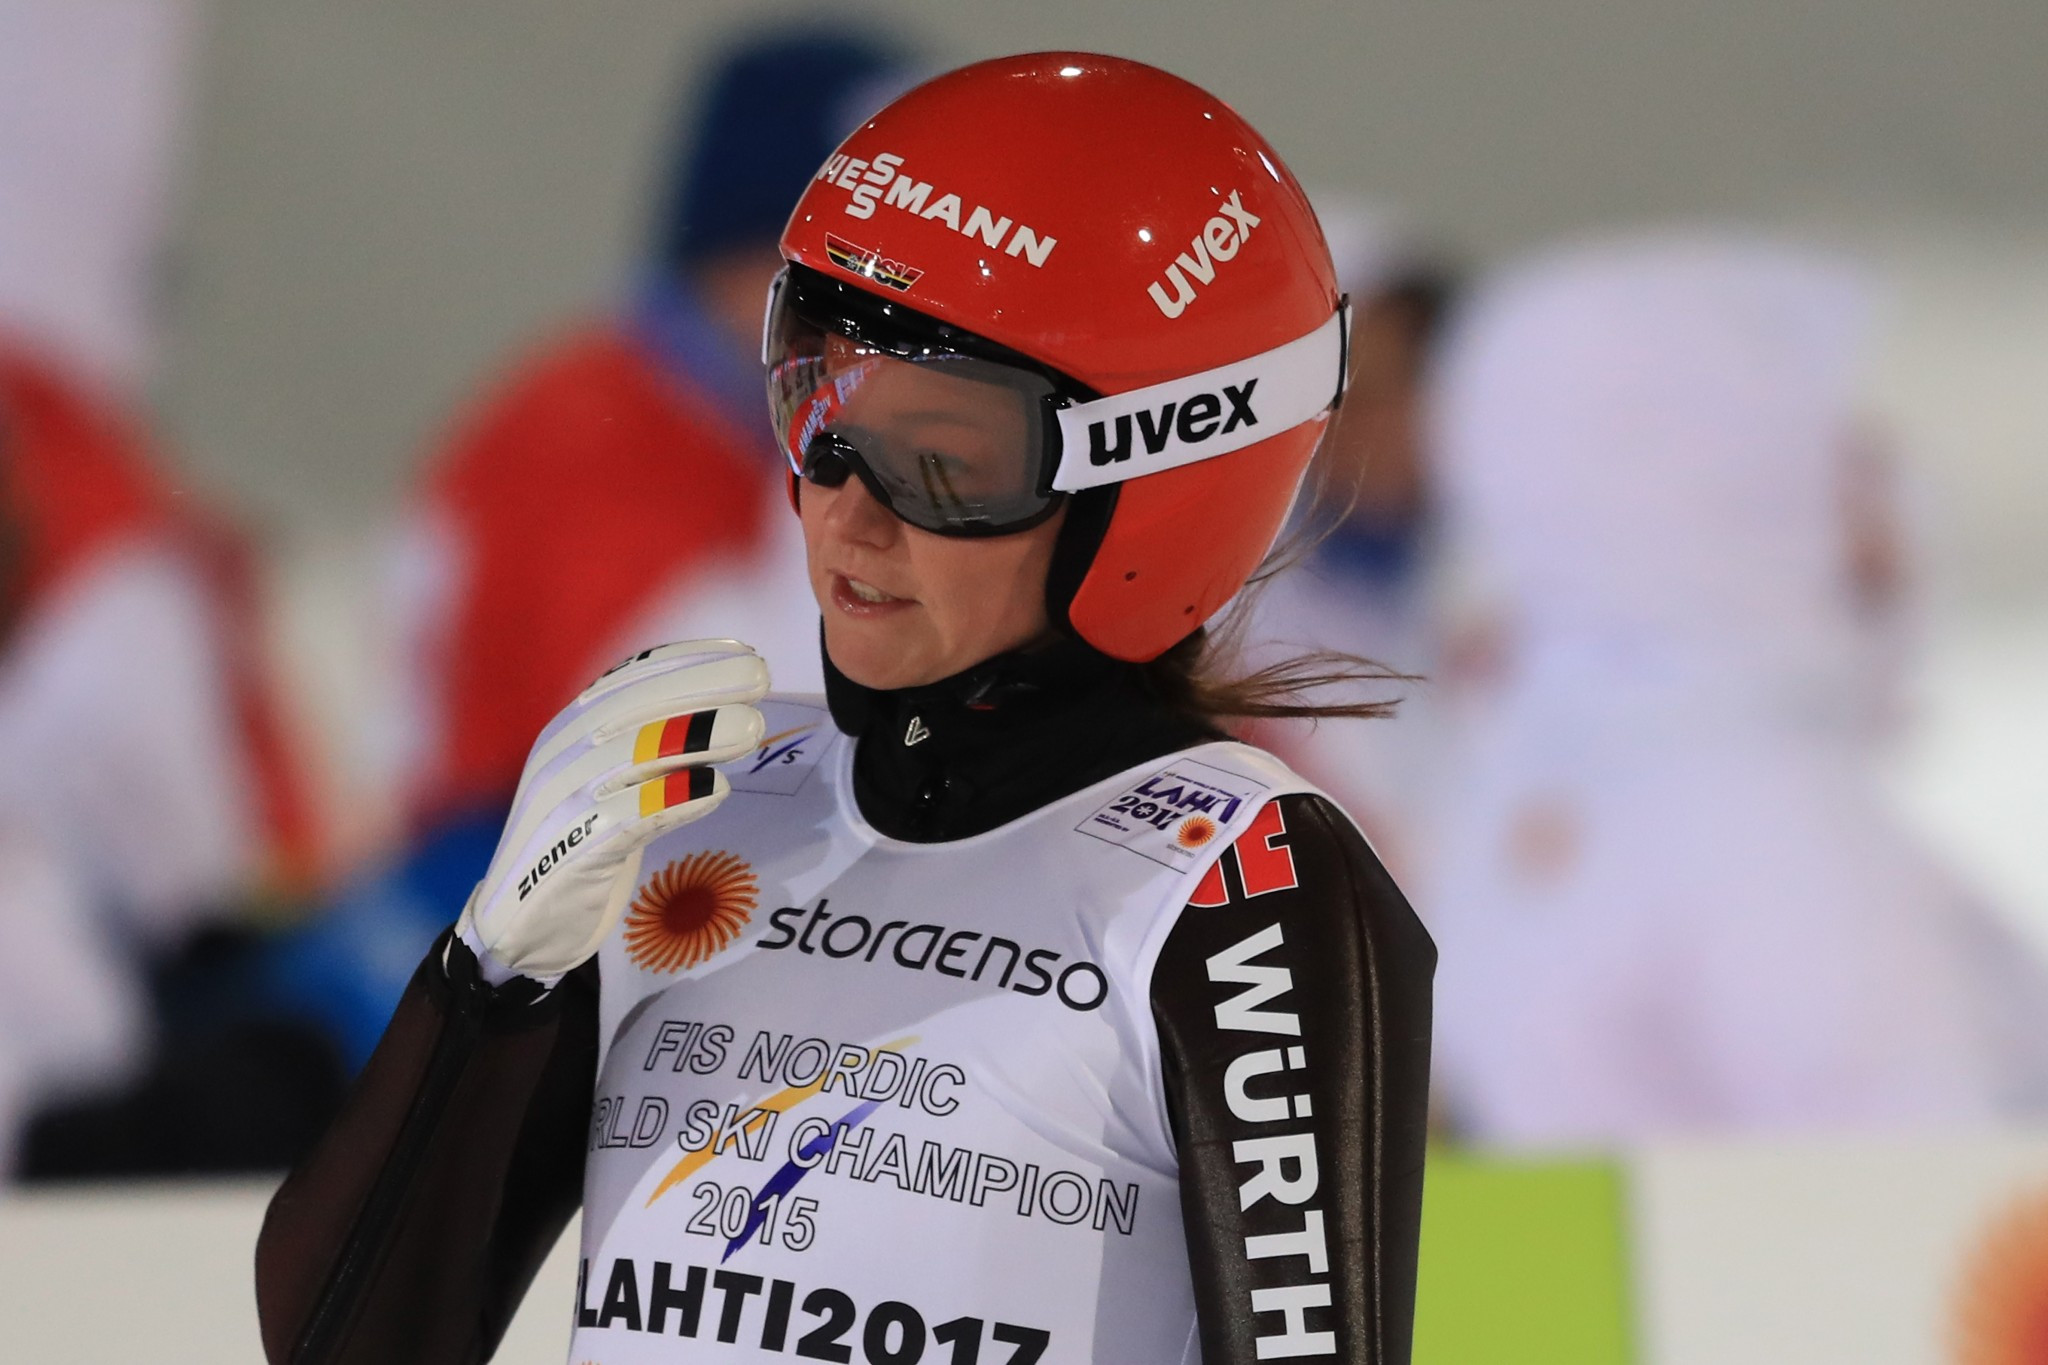 Olympic ski jumping champion Vogt suffers knee injury